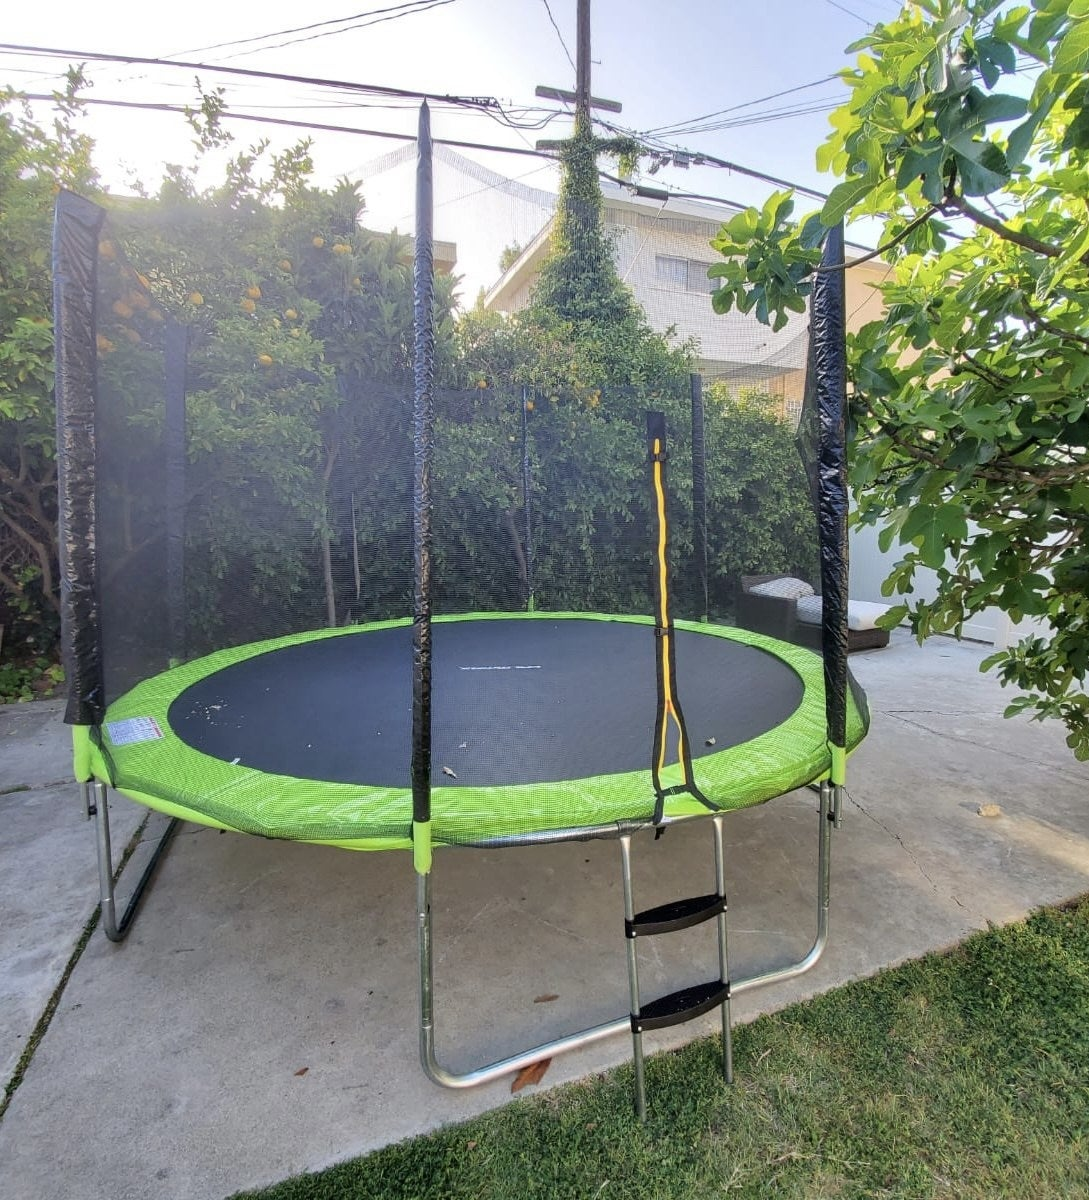 reviewer image of the green 12 foot trampoline in a backyard